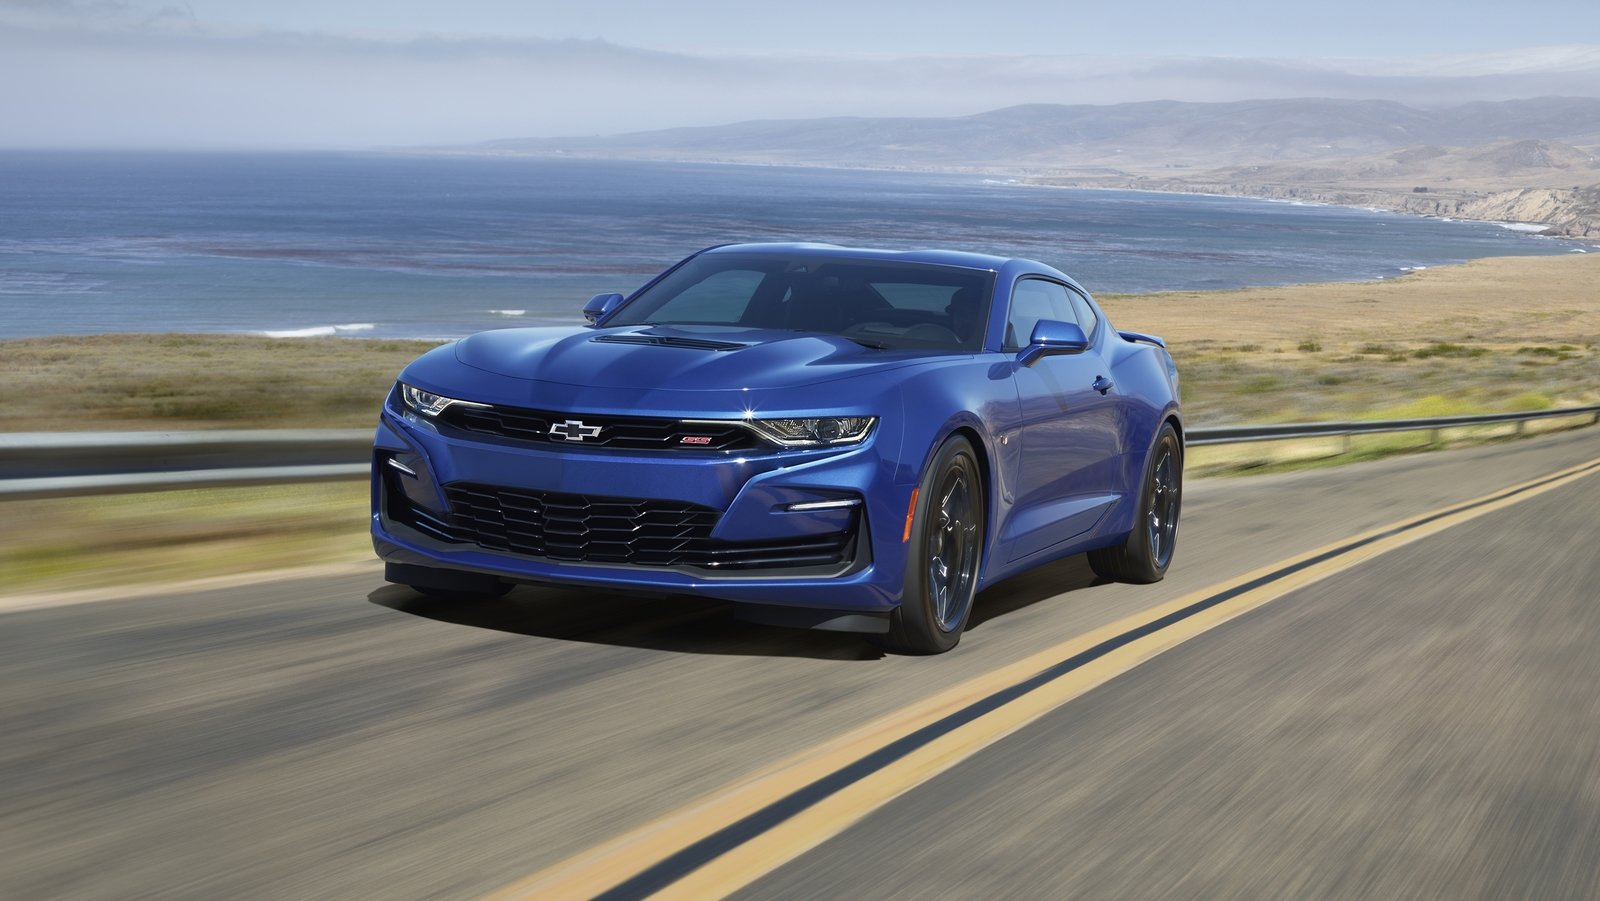 2019 2020 Chevrolet Camaro Pictures Photos Wallpapers And Videos